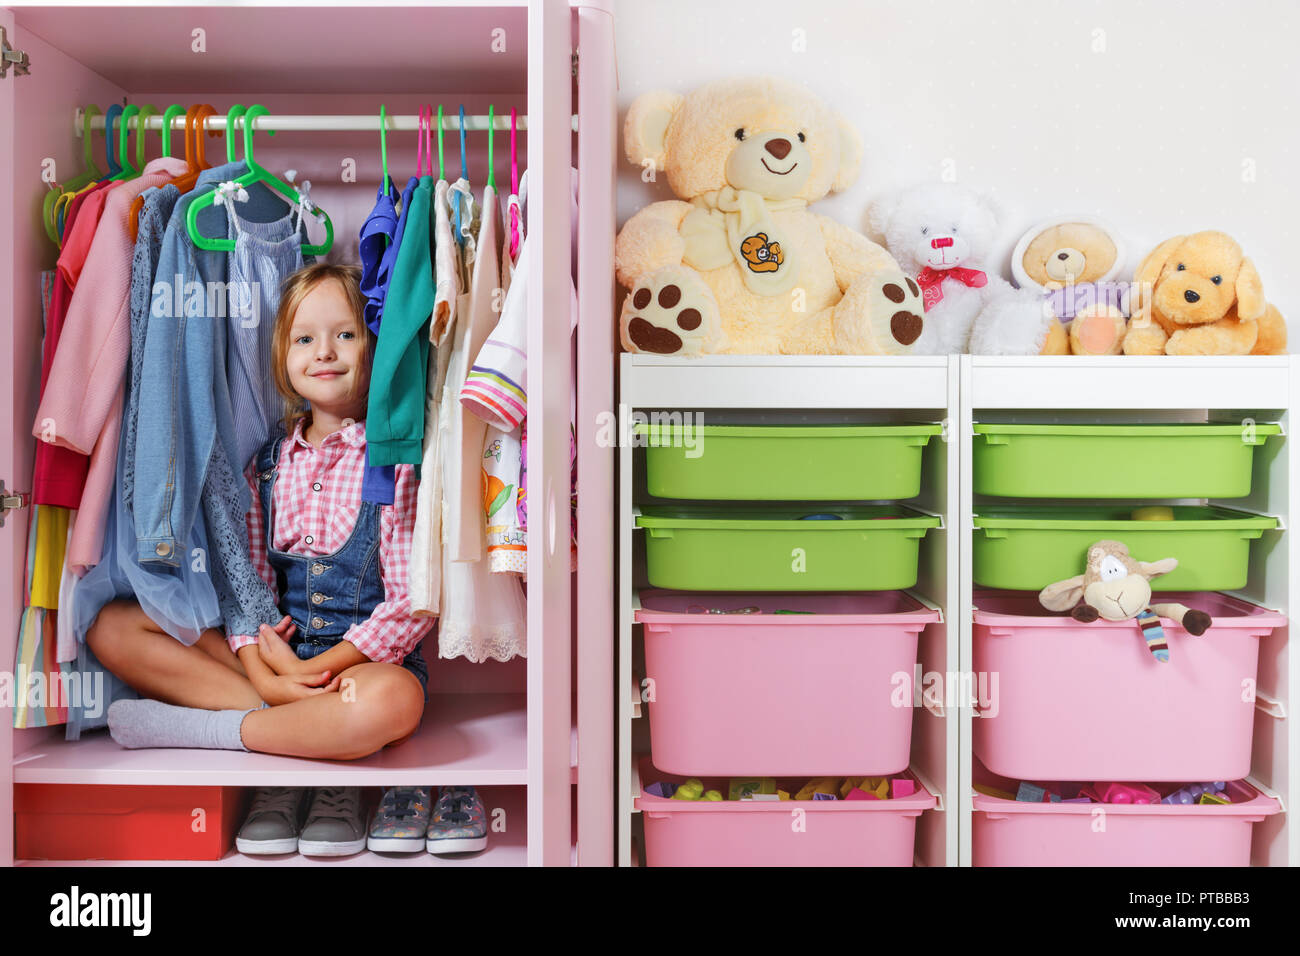 A little child girl is sitting in a wardrobe in a children's room. Saving and storage system for children's things and toys concept. Stock Photo